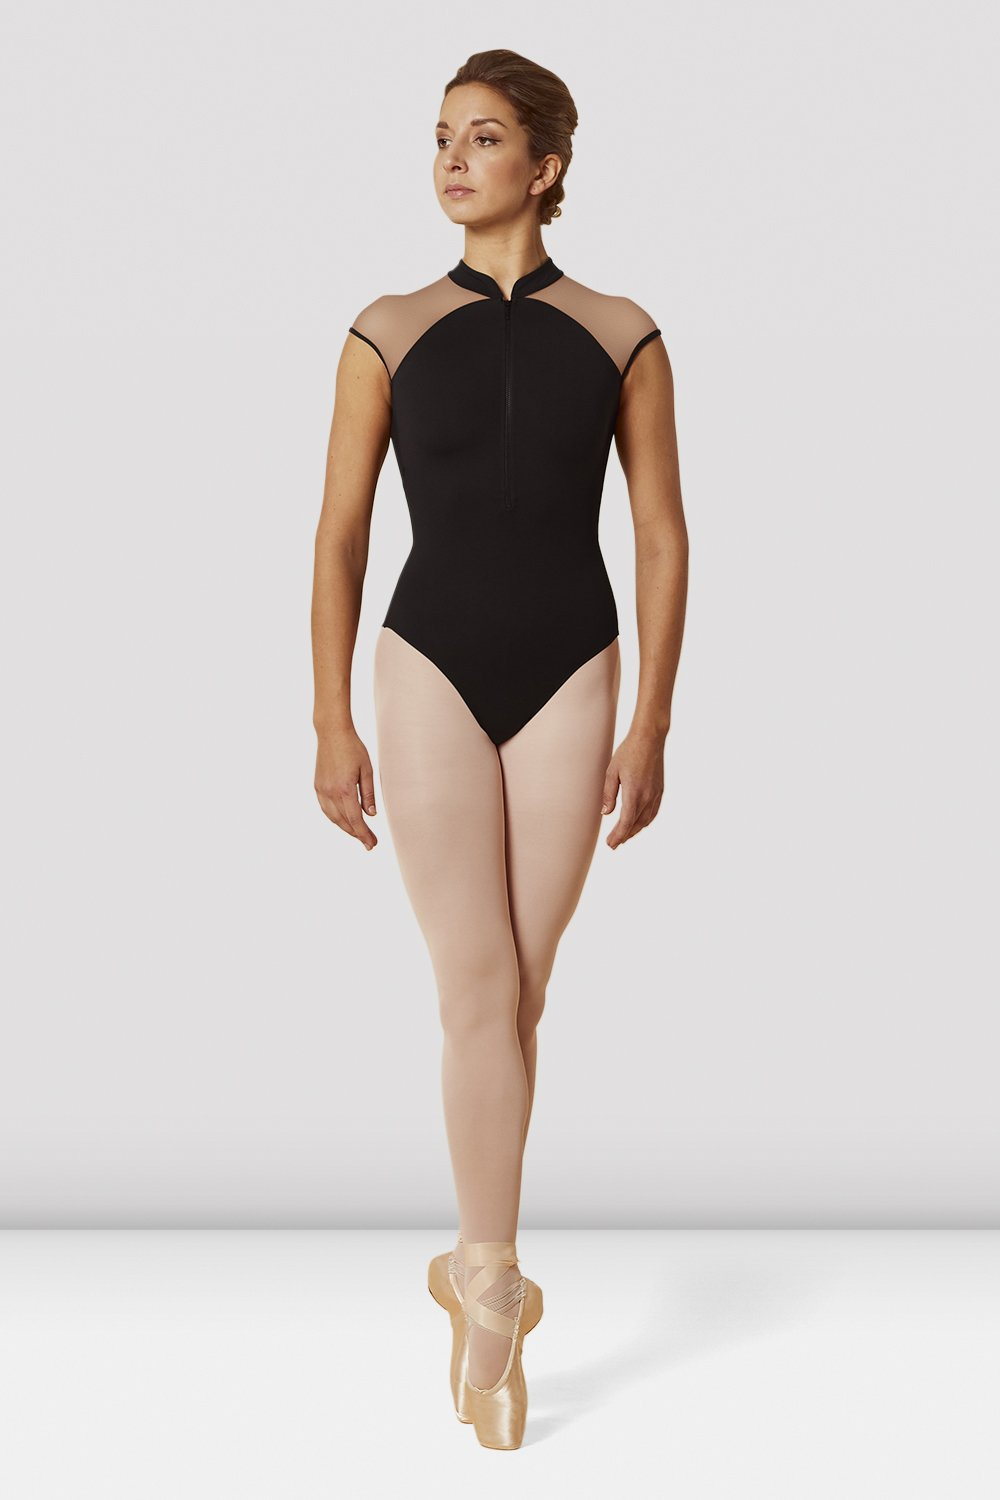 Zip Front High Neck Cap Sleeve Leotard BY MIRELLA